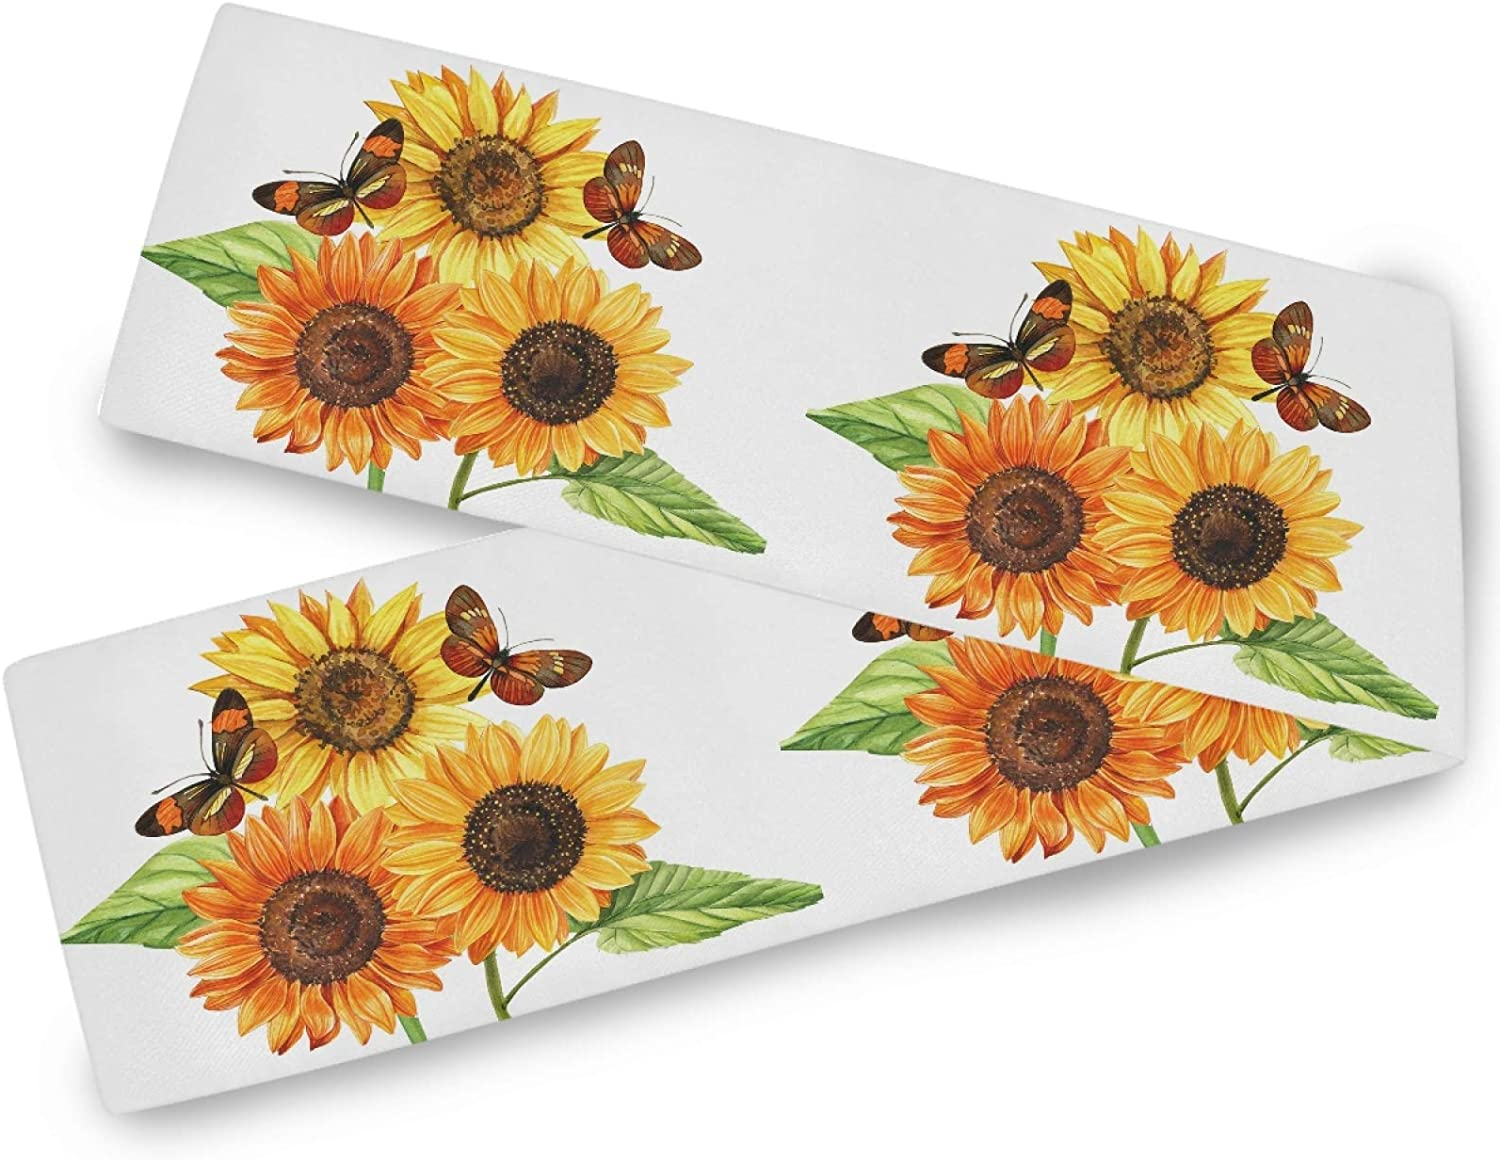 Oarencol Butterfly Sunflower Table Runner Tropical Flroals Animal Double Sided 13x70 inch Polyester Table Cloth